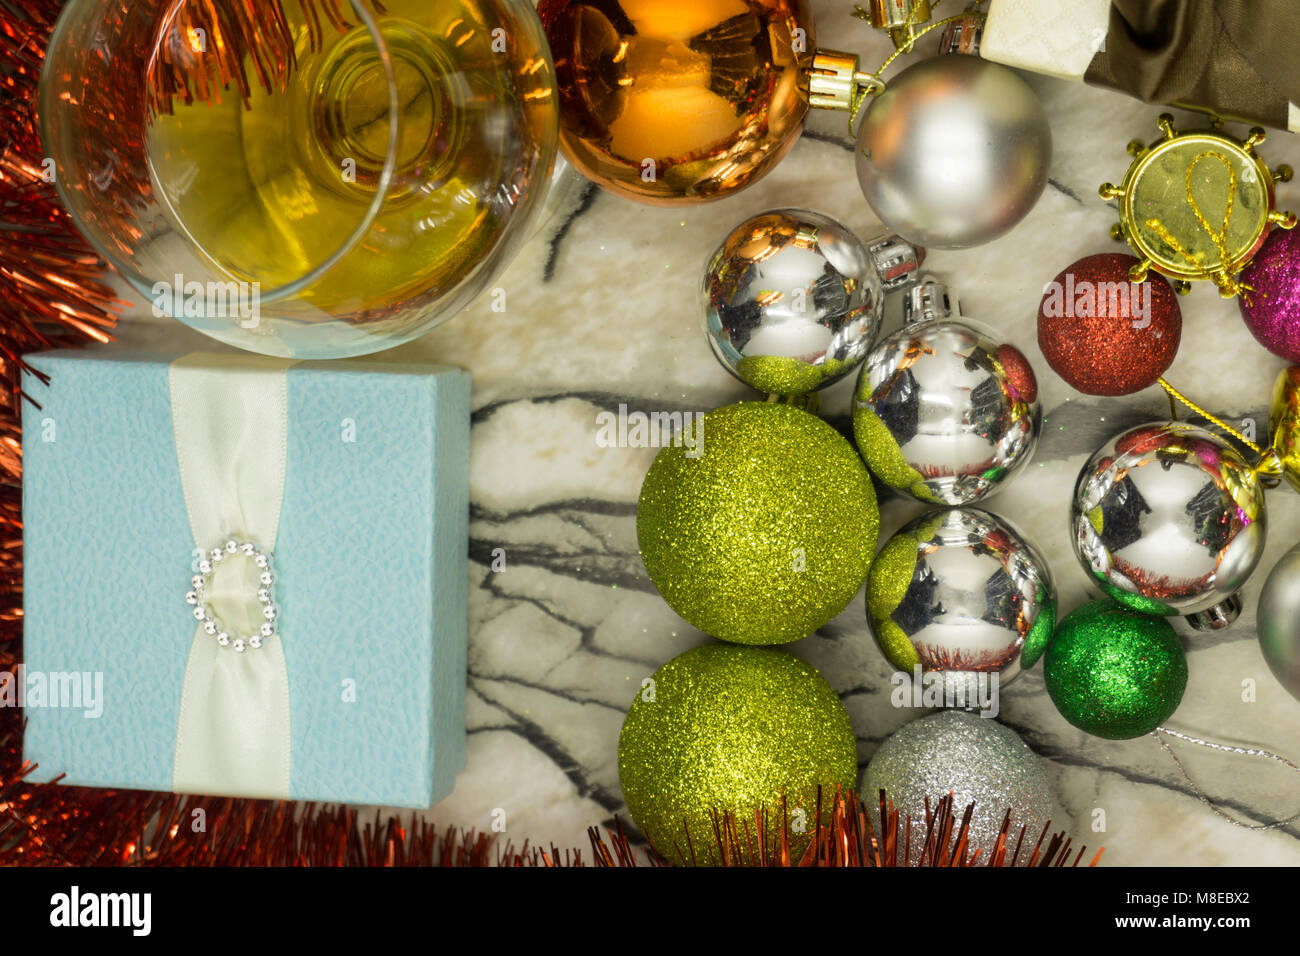 Christmas Christmas gifts and decorations against the background of ...